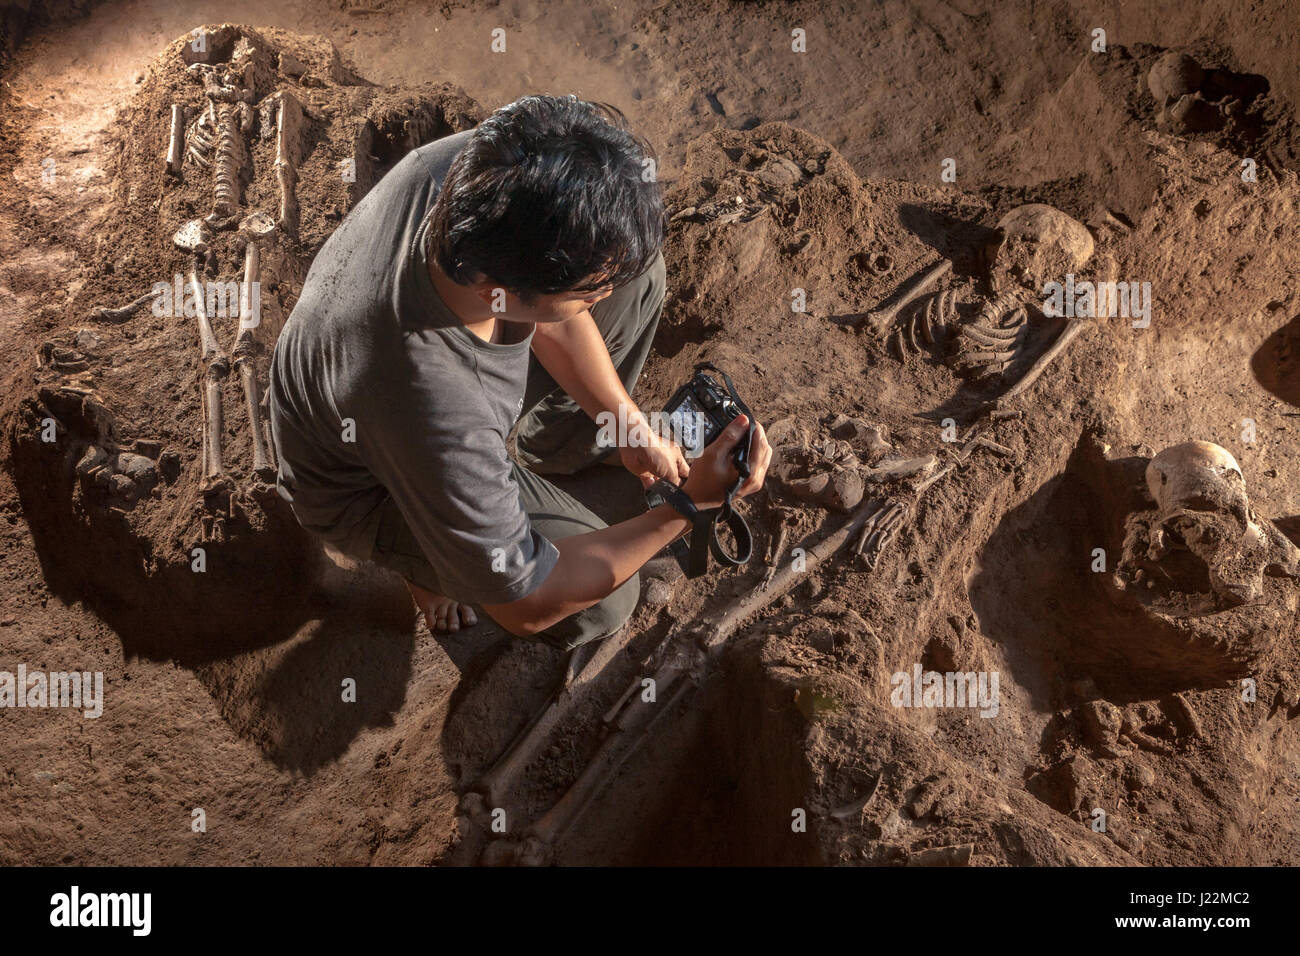 An Indonesian archaeologist taking photos of the prehistoric hominid skeletons on Gua Harimau excavation site, Sumatra, - Stock Image